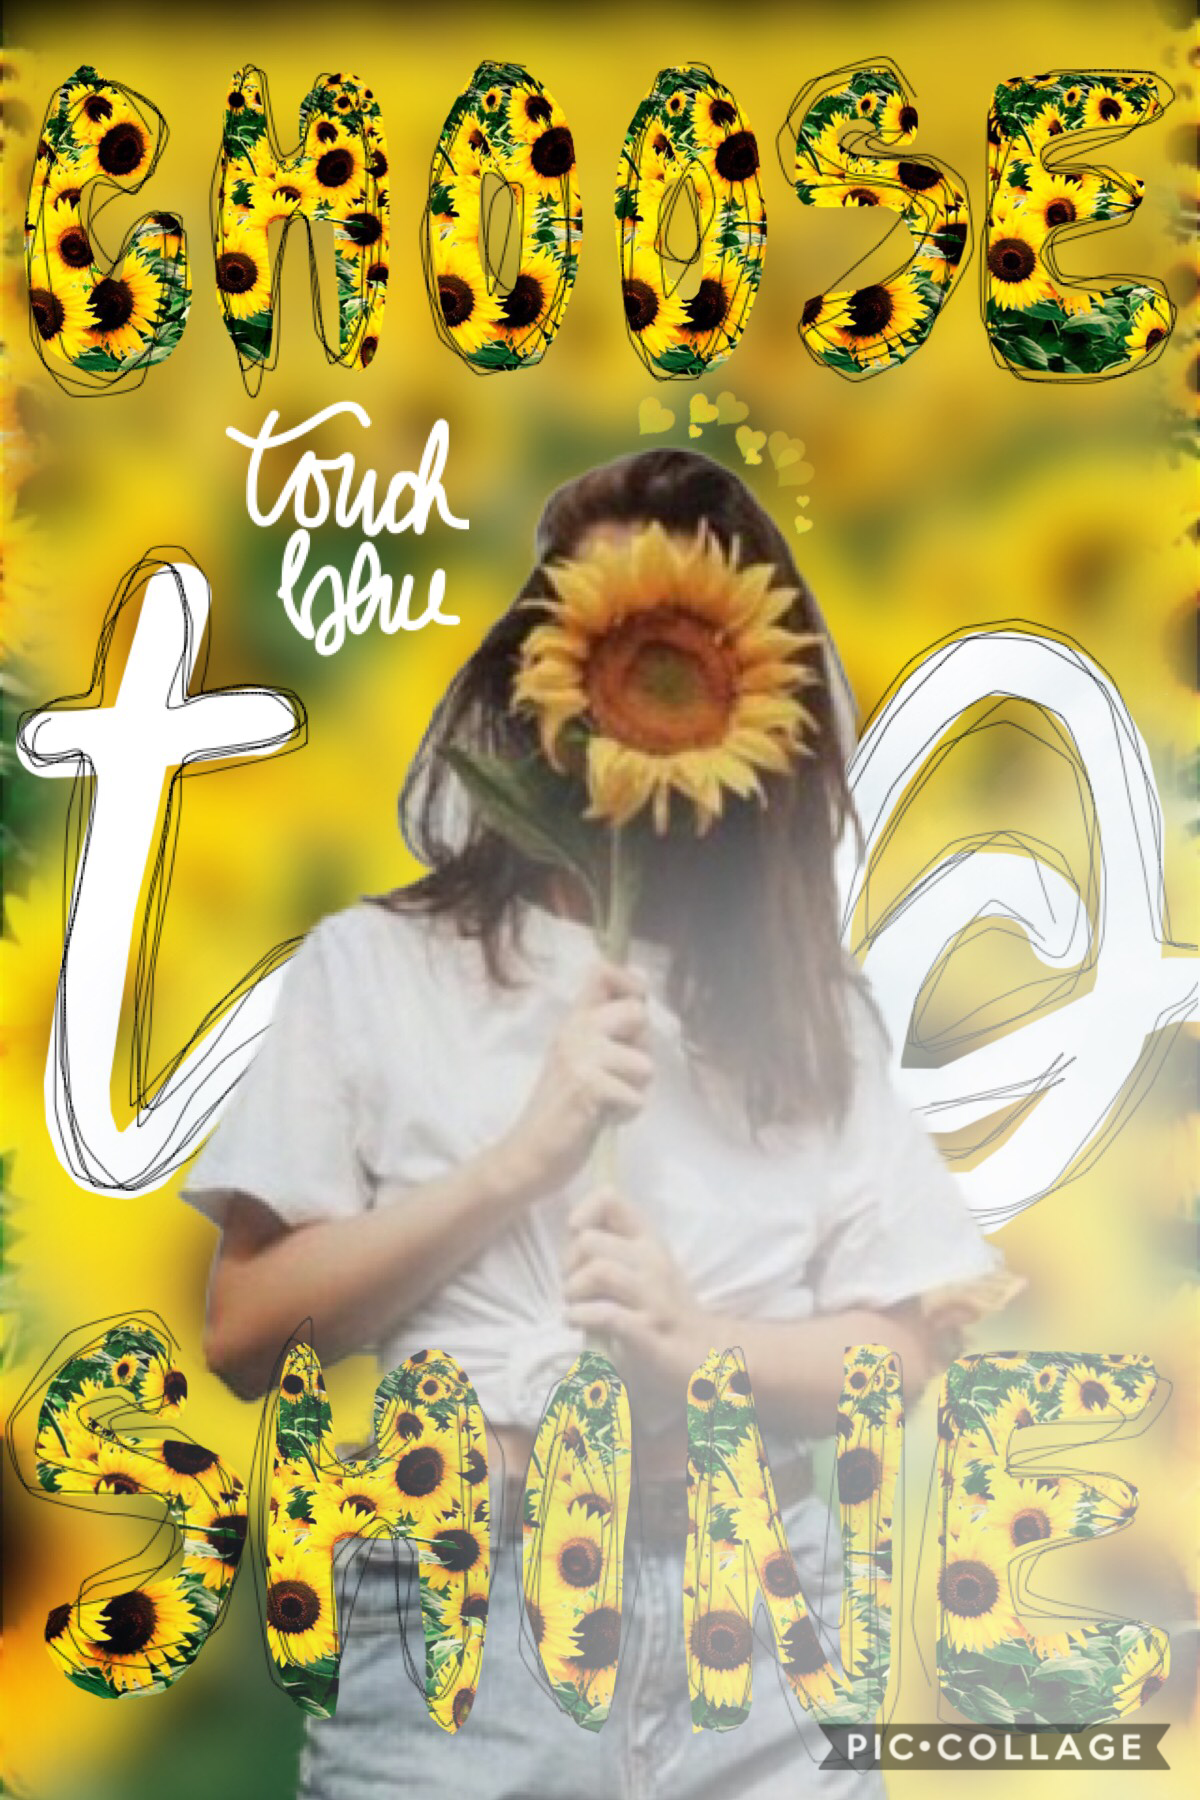 🌻 tap 🌻 Entry to gamesssss